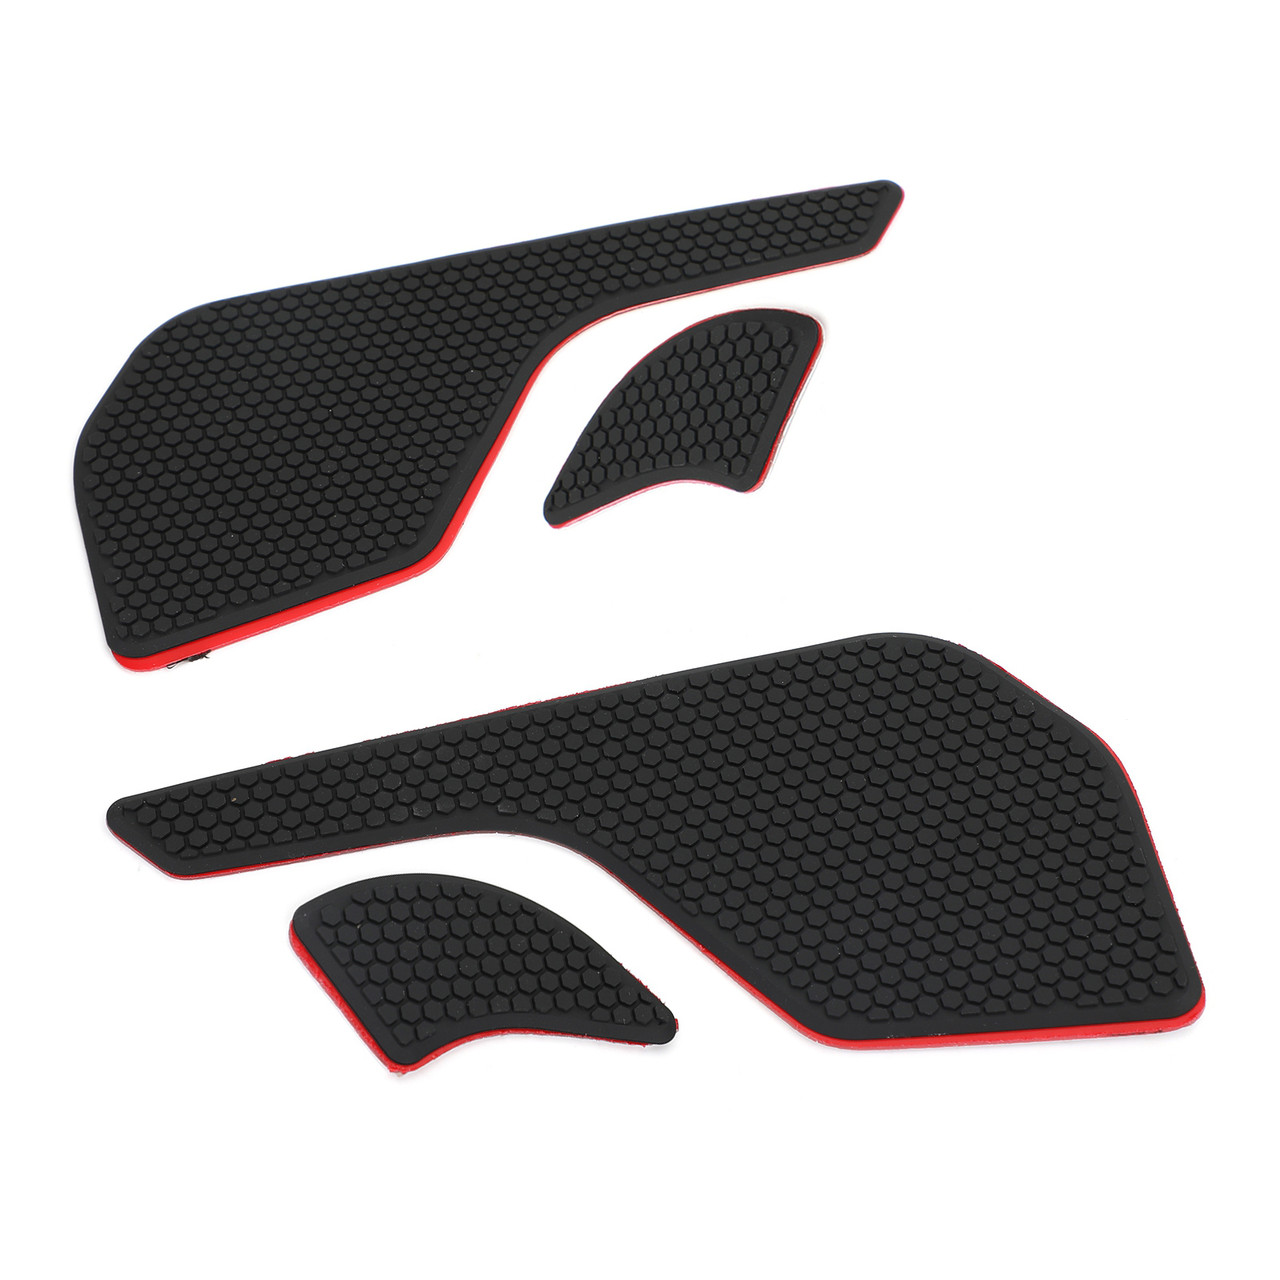 Tank Traction Pad Side Gas Knee Grip Protector Fit For Triumph Tiger 800 XR/XRX/XRT 15-19 Black